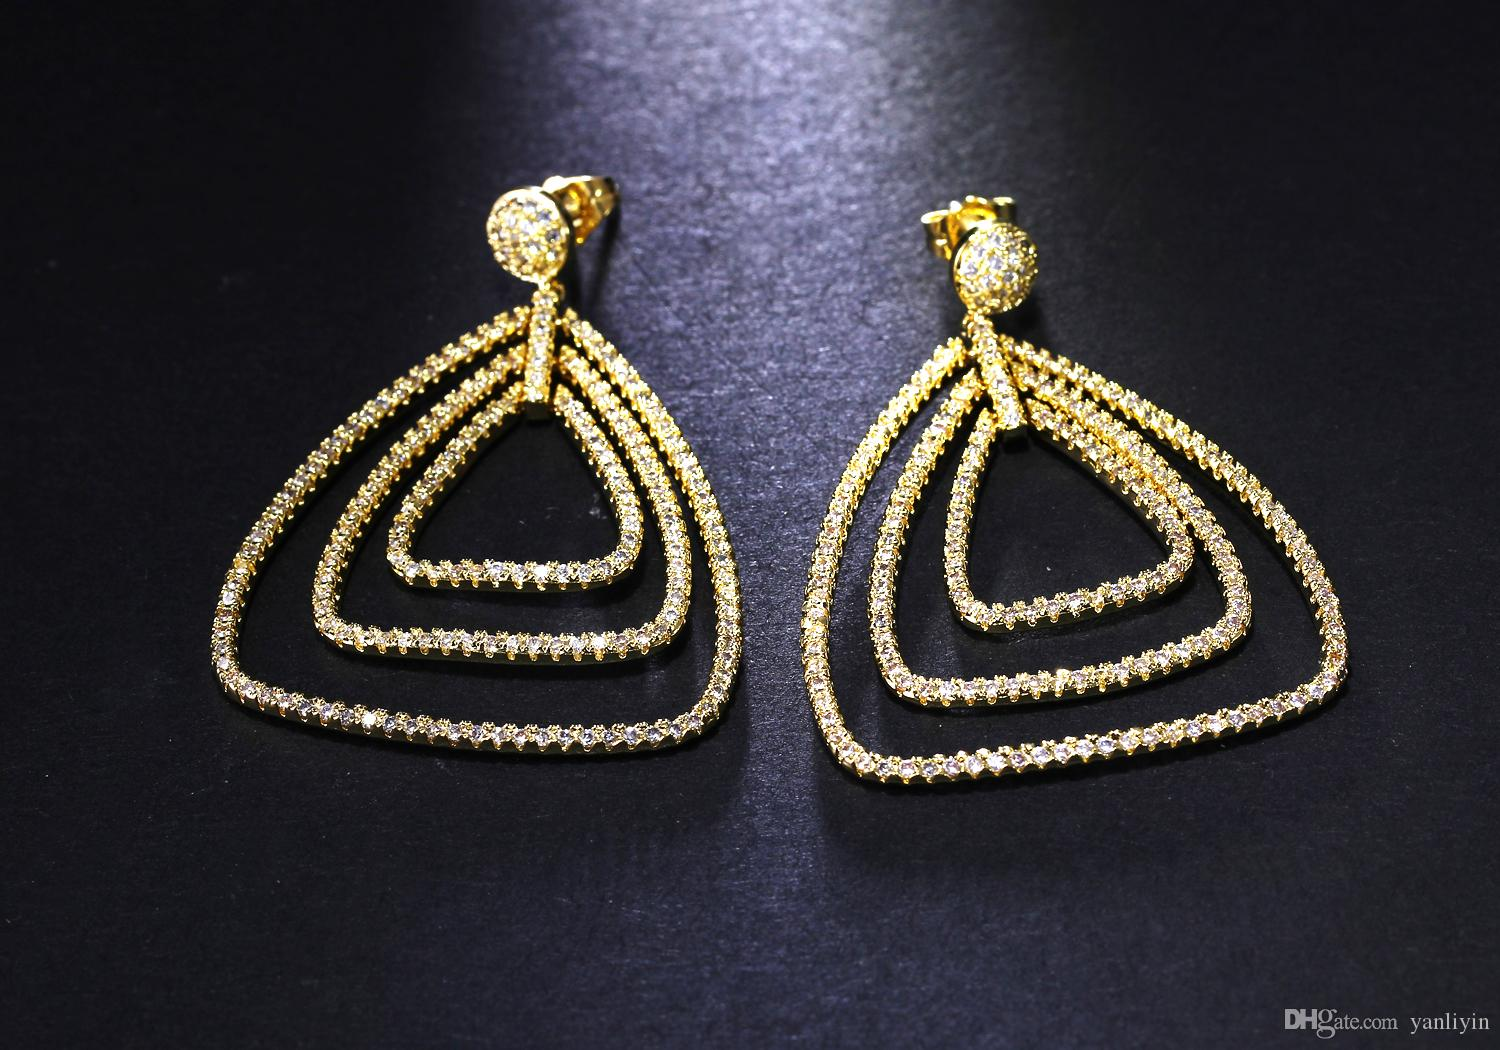 Remarkably! Gold plate With All White Small Cubic Zirconia,Triangle Shape Dangling Earrings